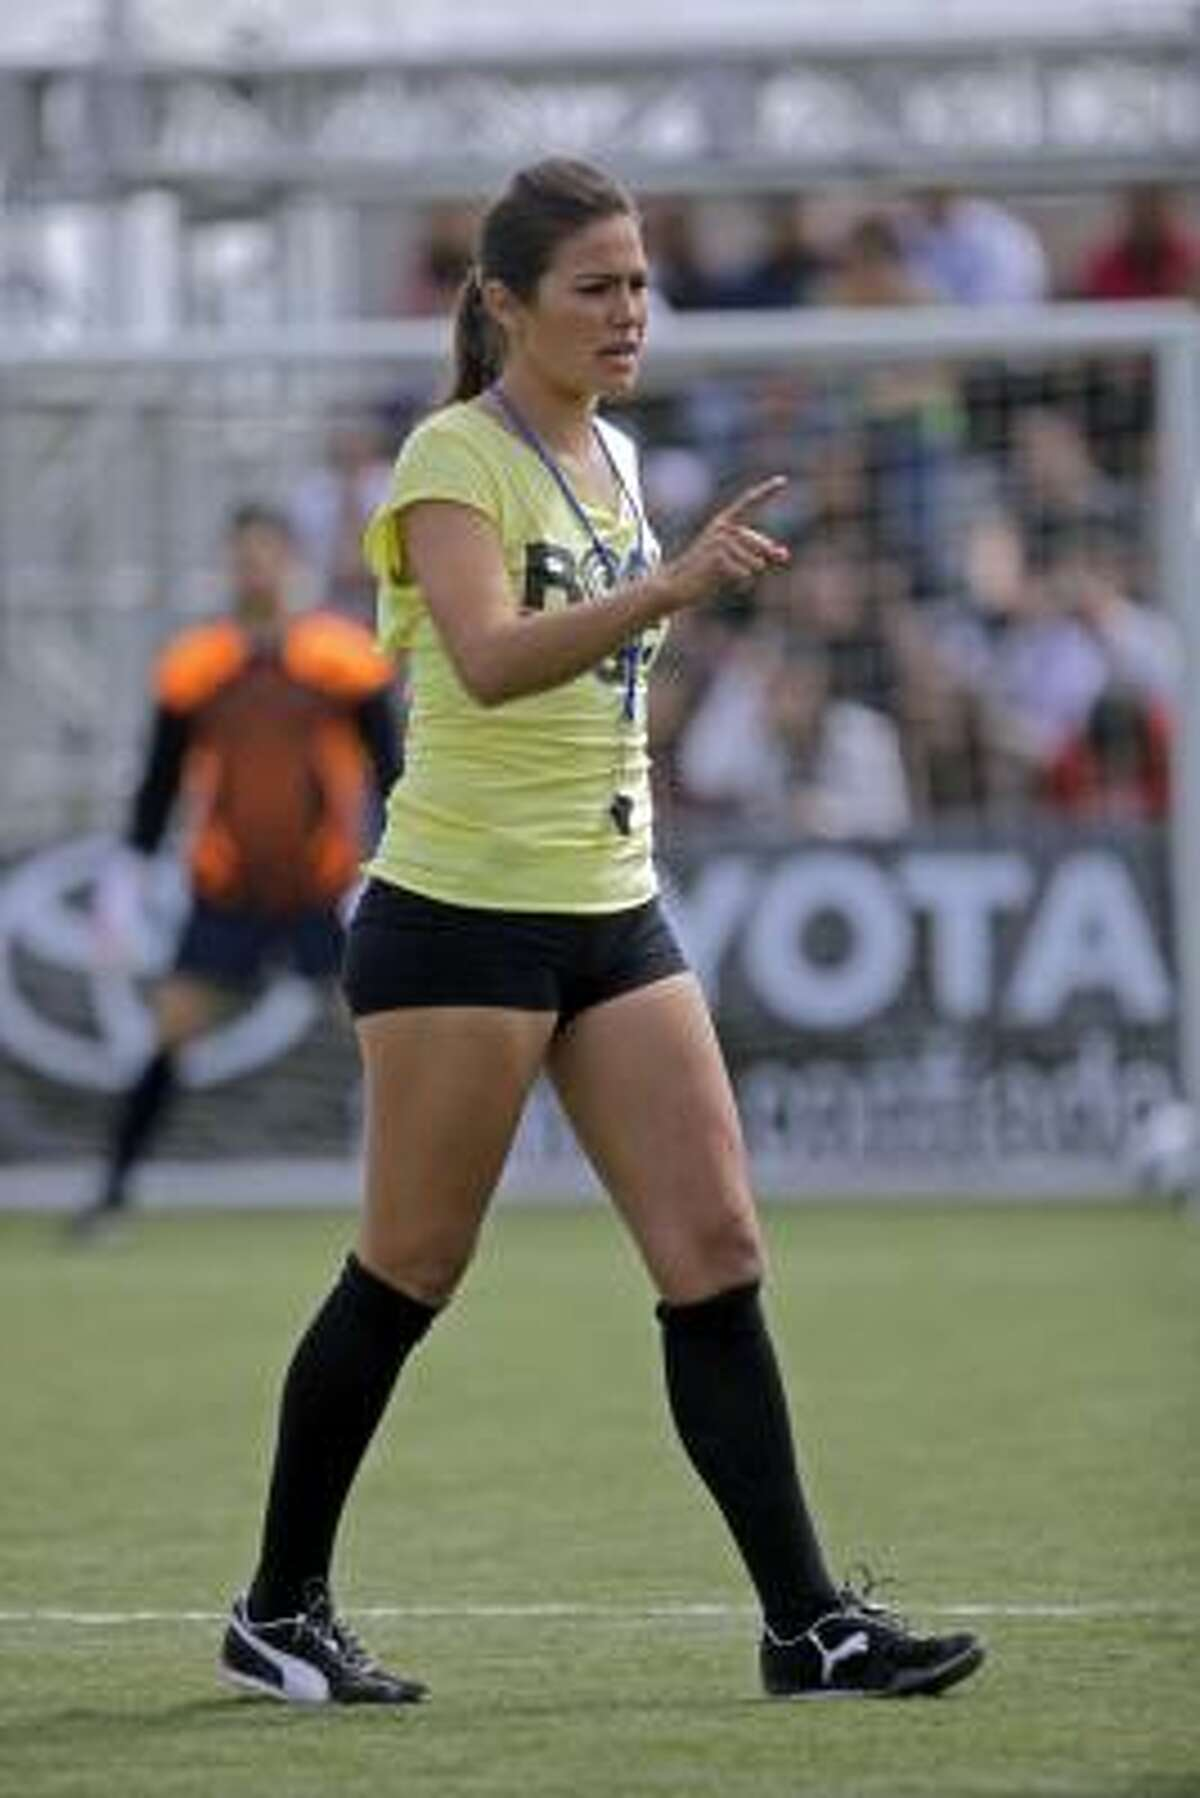 Fox Soccer Channel's Temrysse Lane referees a celebrity soccer match at the Home Depot Center on Wednesday, March 31, in Carson, Calif.